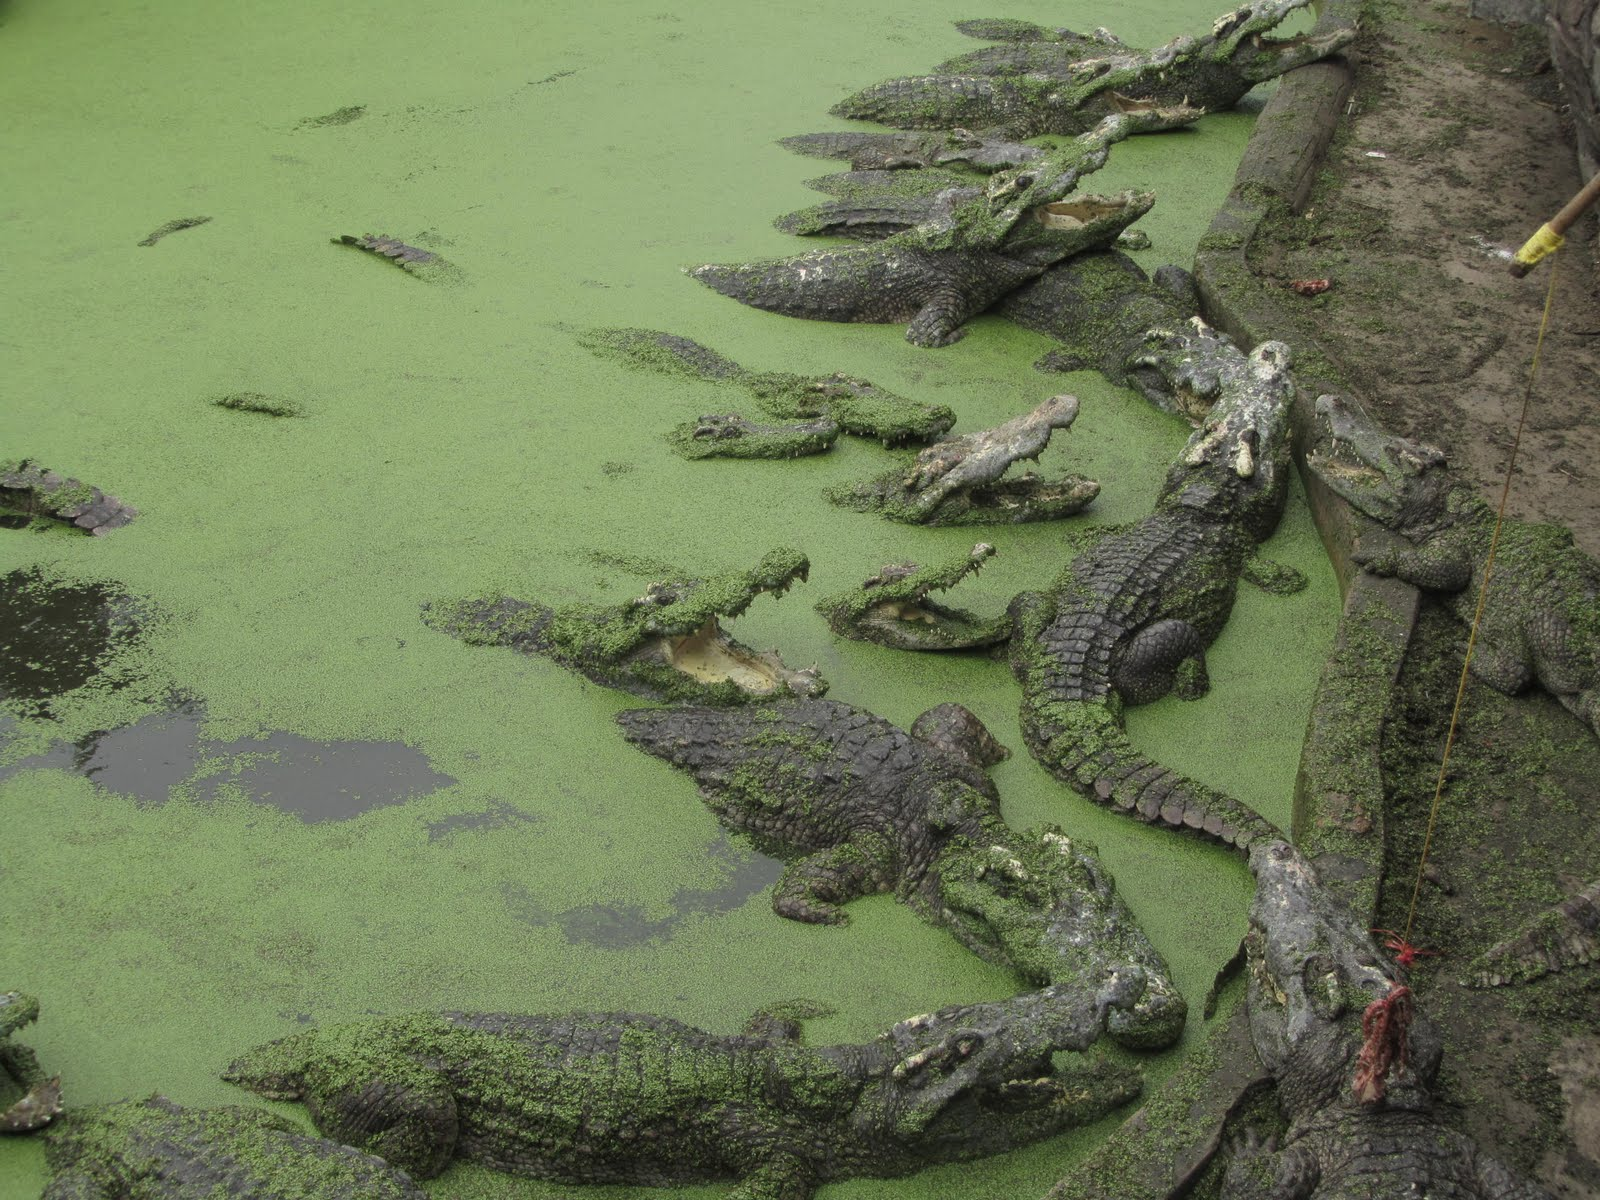 One year in Thailand: Samutprakarn Crocodile Farm